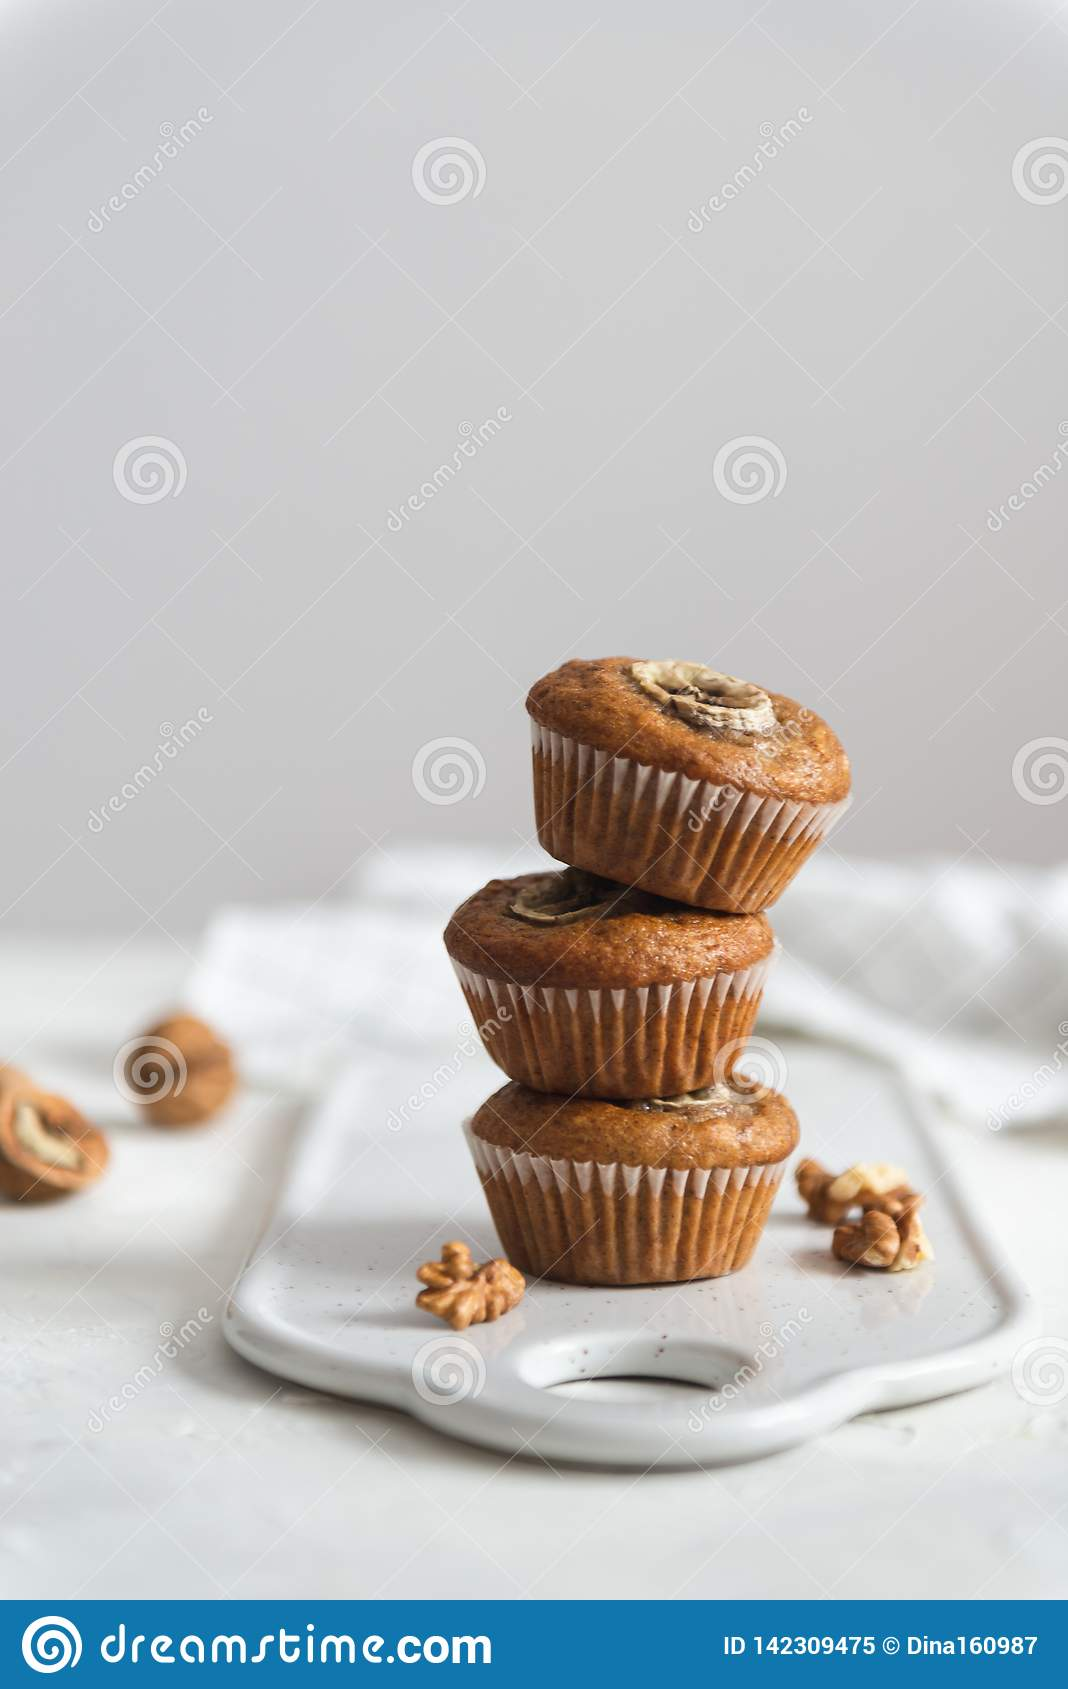 Stack of Homemade vegan banana walnut muffins. Side view, copy space